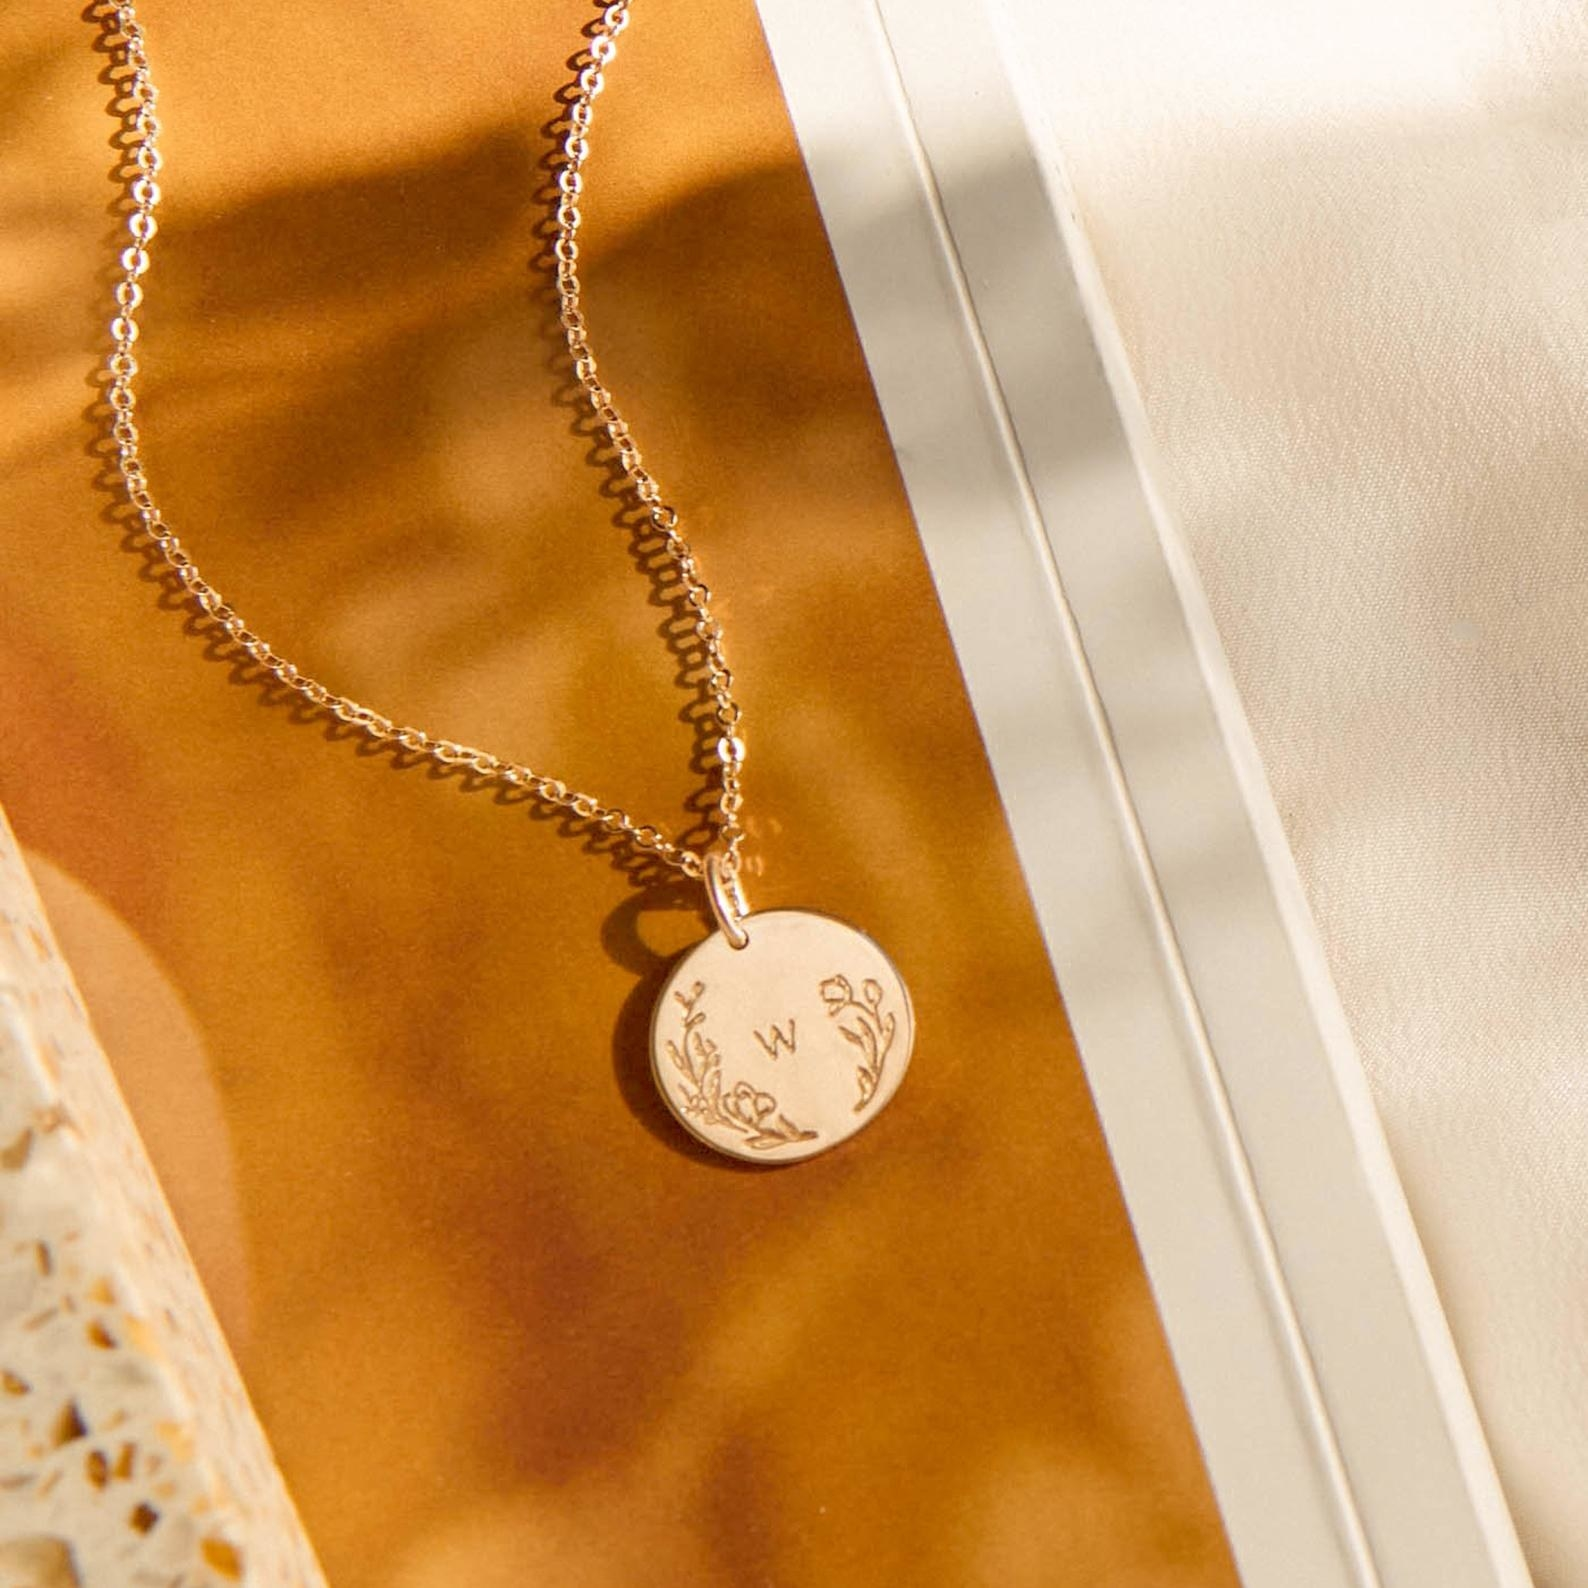 necklace with the initial w surrounded by florals